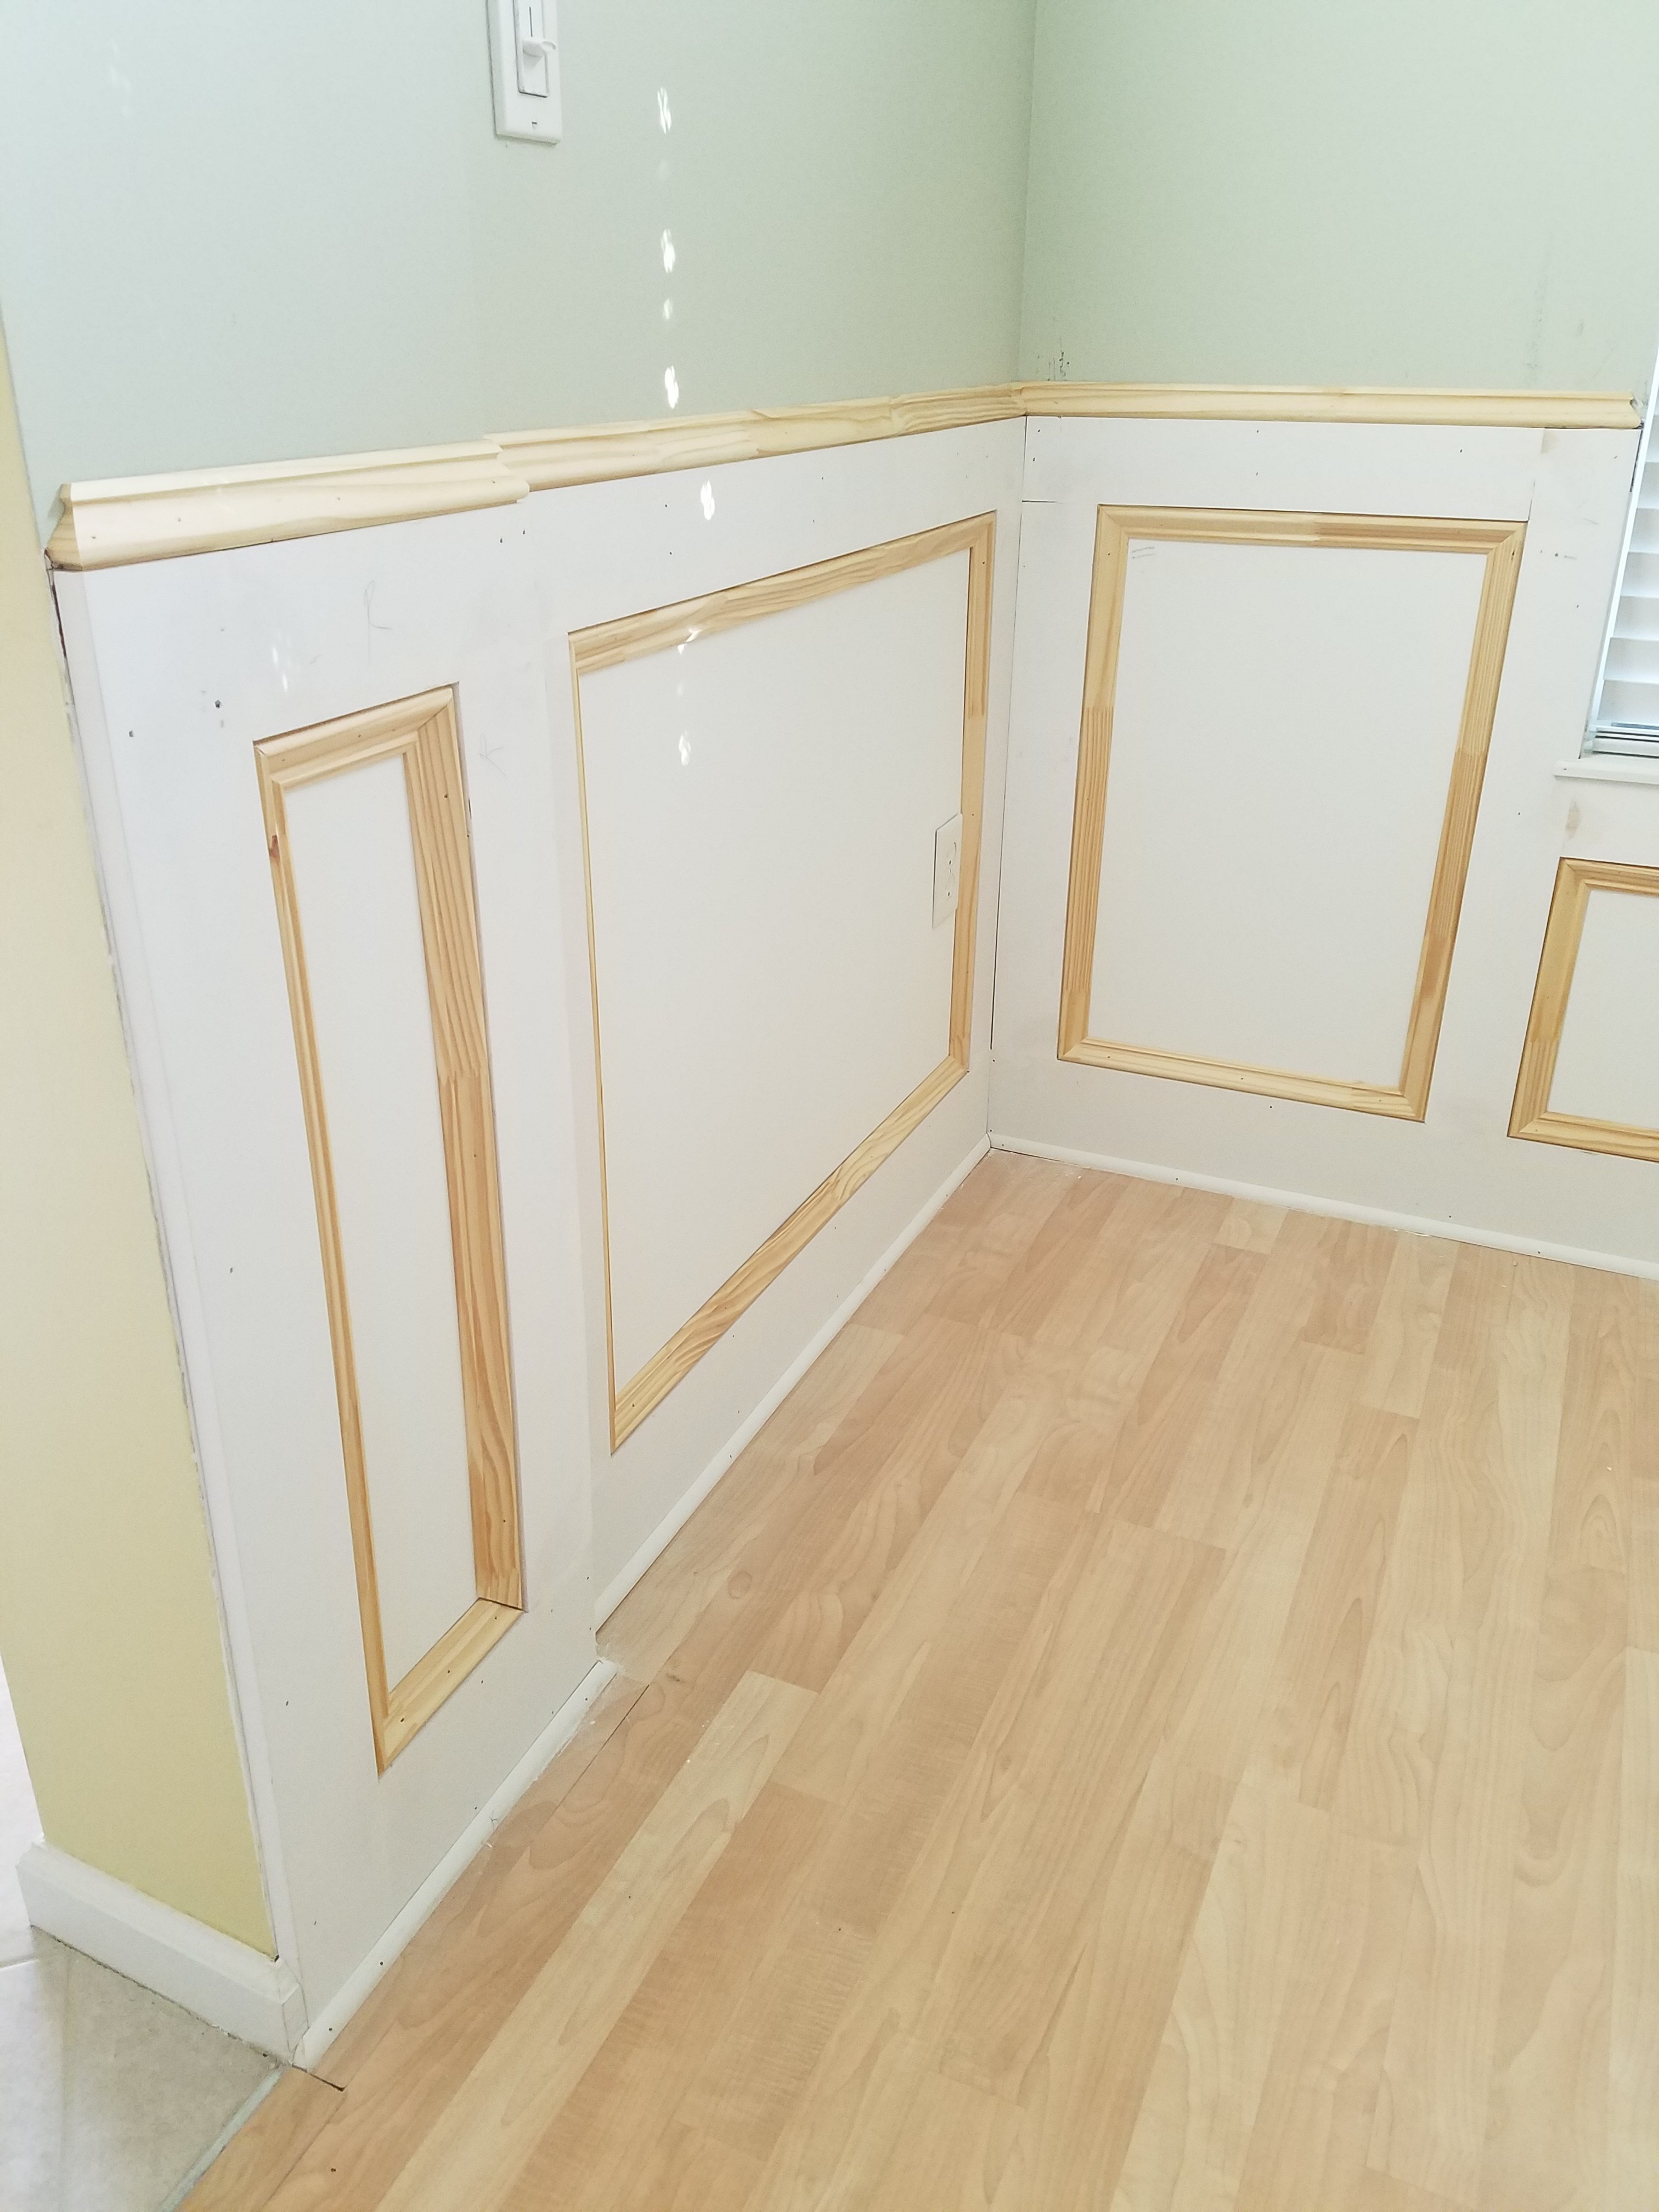 Recessed Panel Reveal Styled Wainscoting Installation In